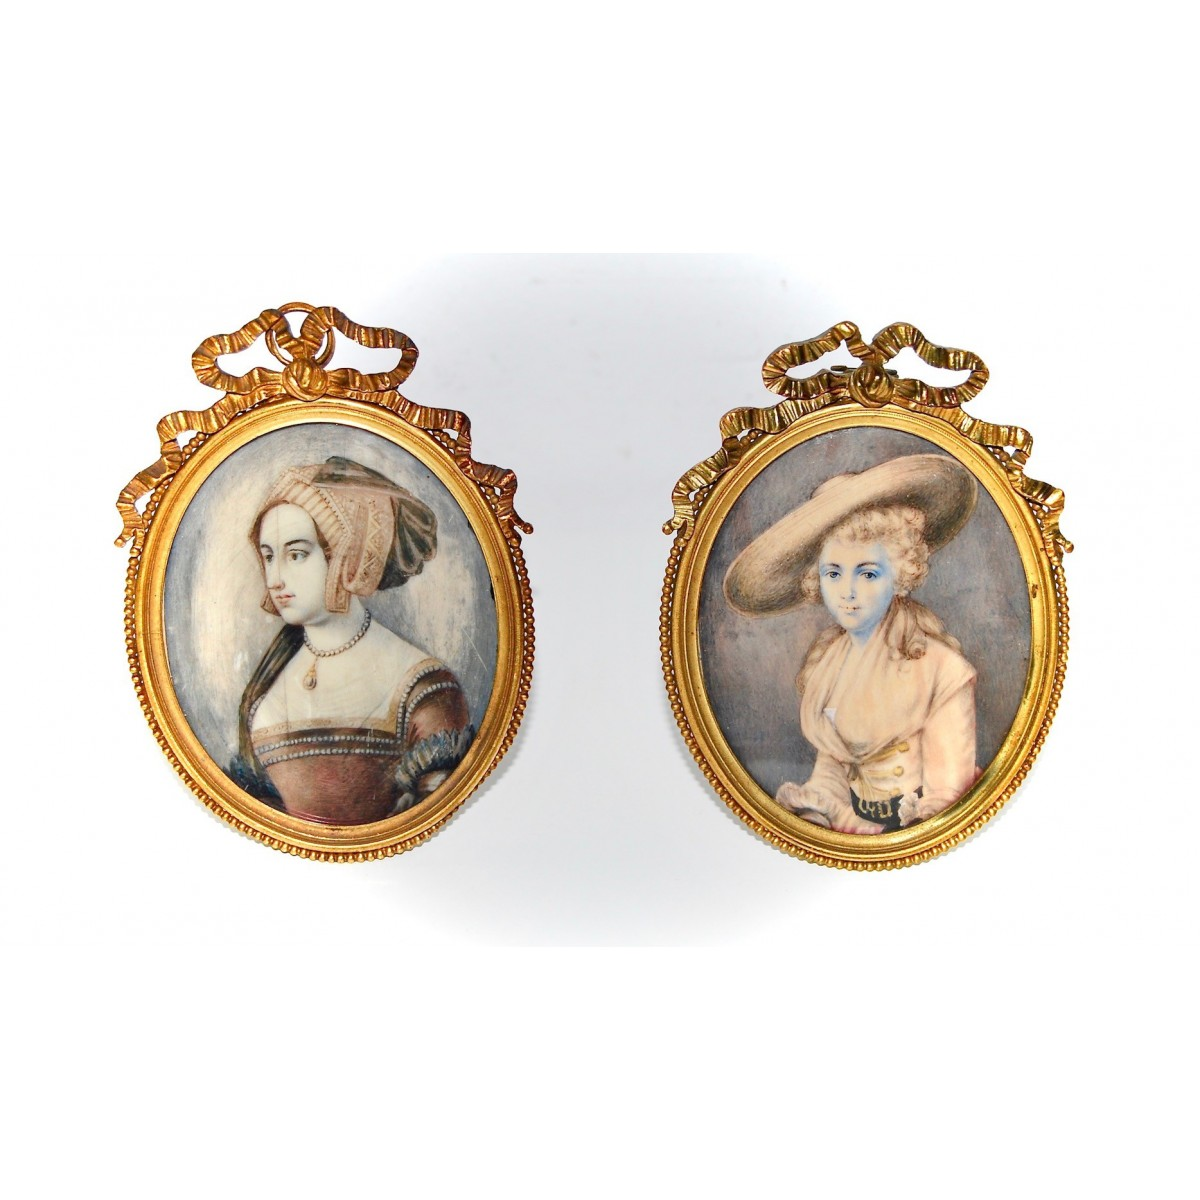 Pair of miniatures of the 19th